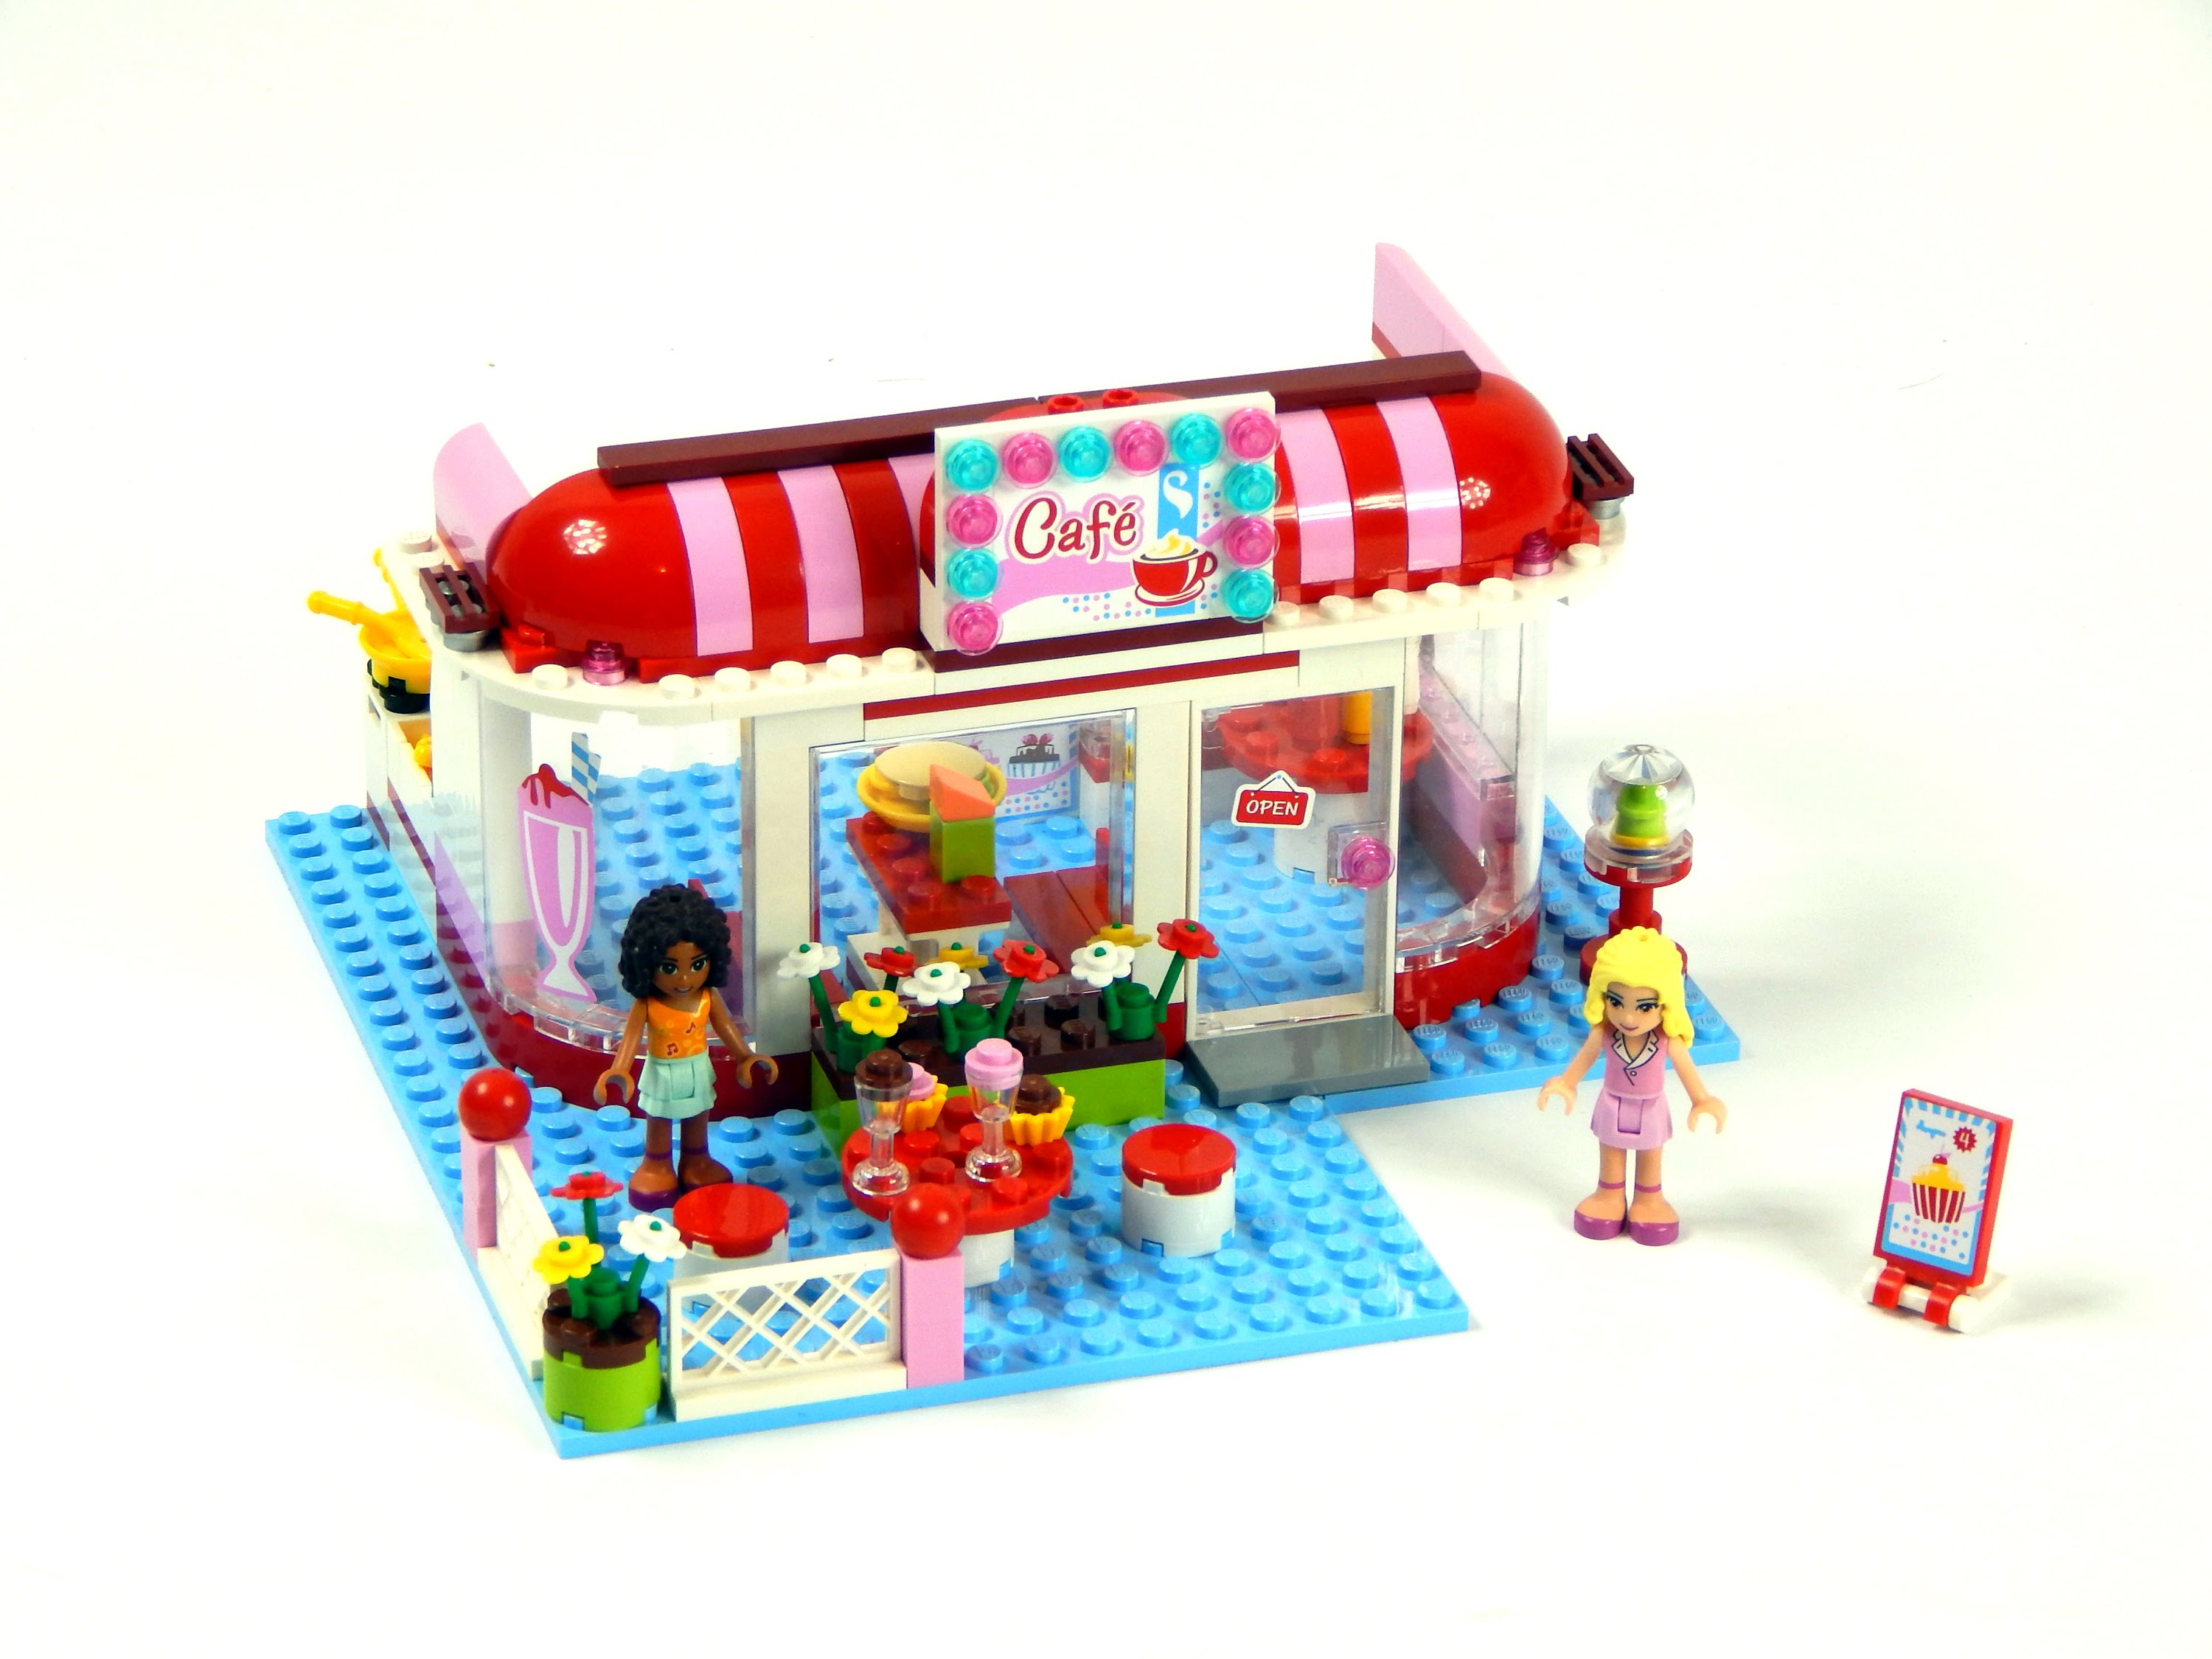 le café lego friends